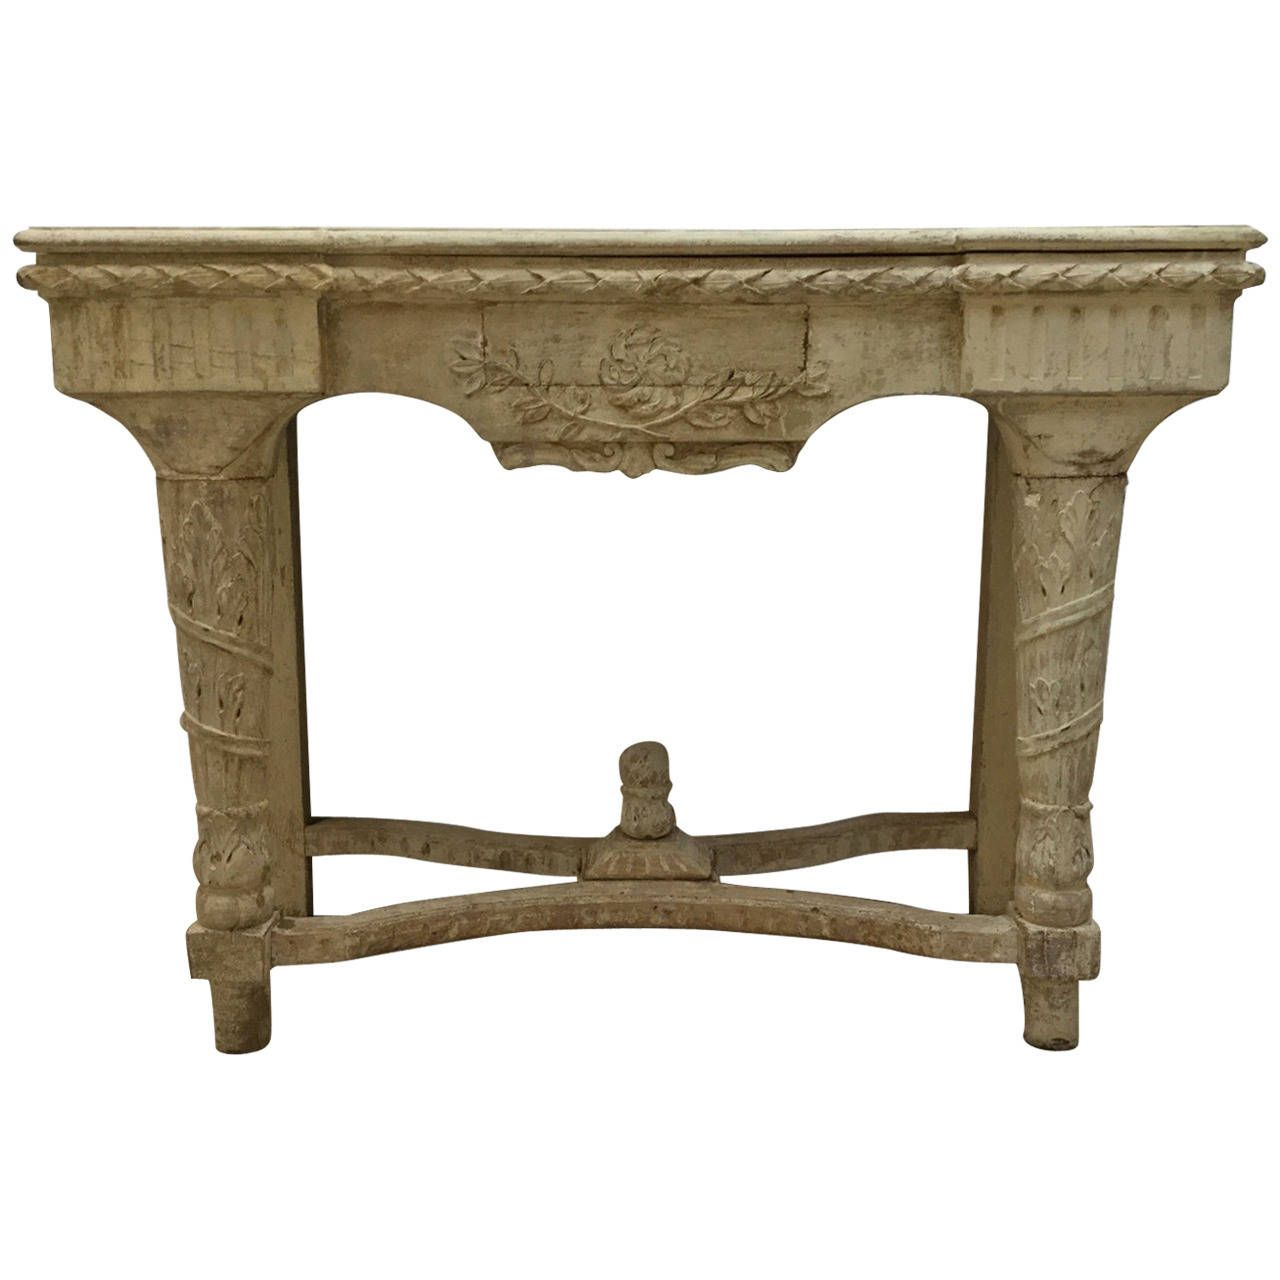 19th Century French Louis Xvi Style Console Table From A Unique